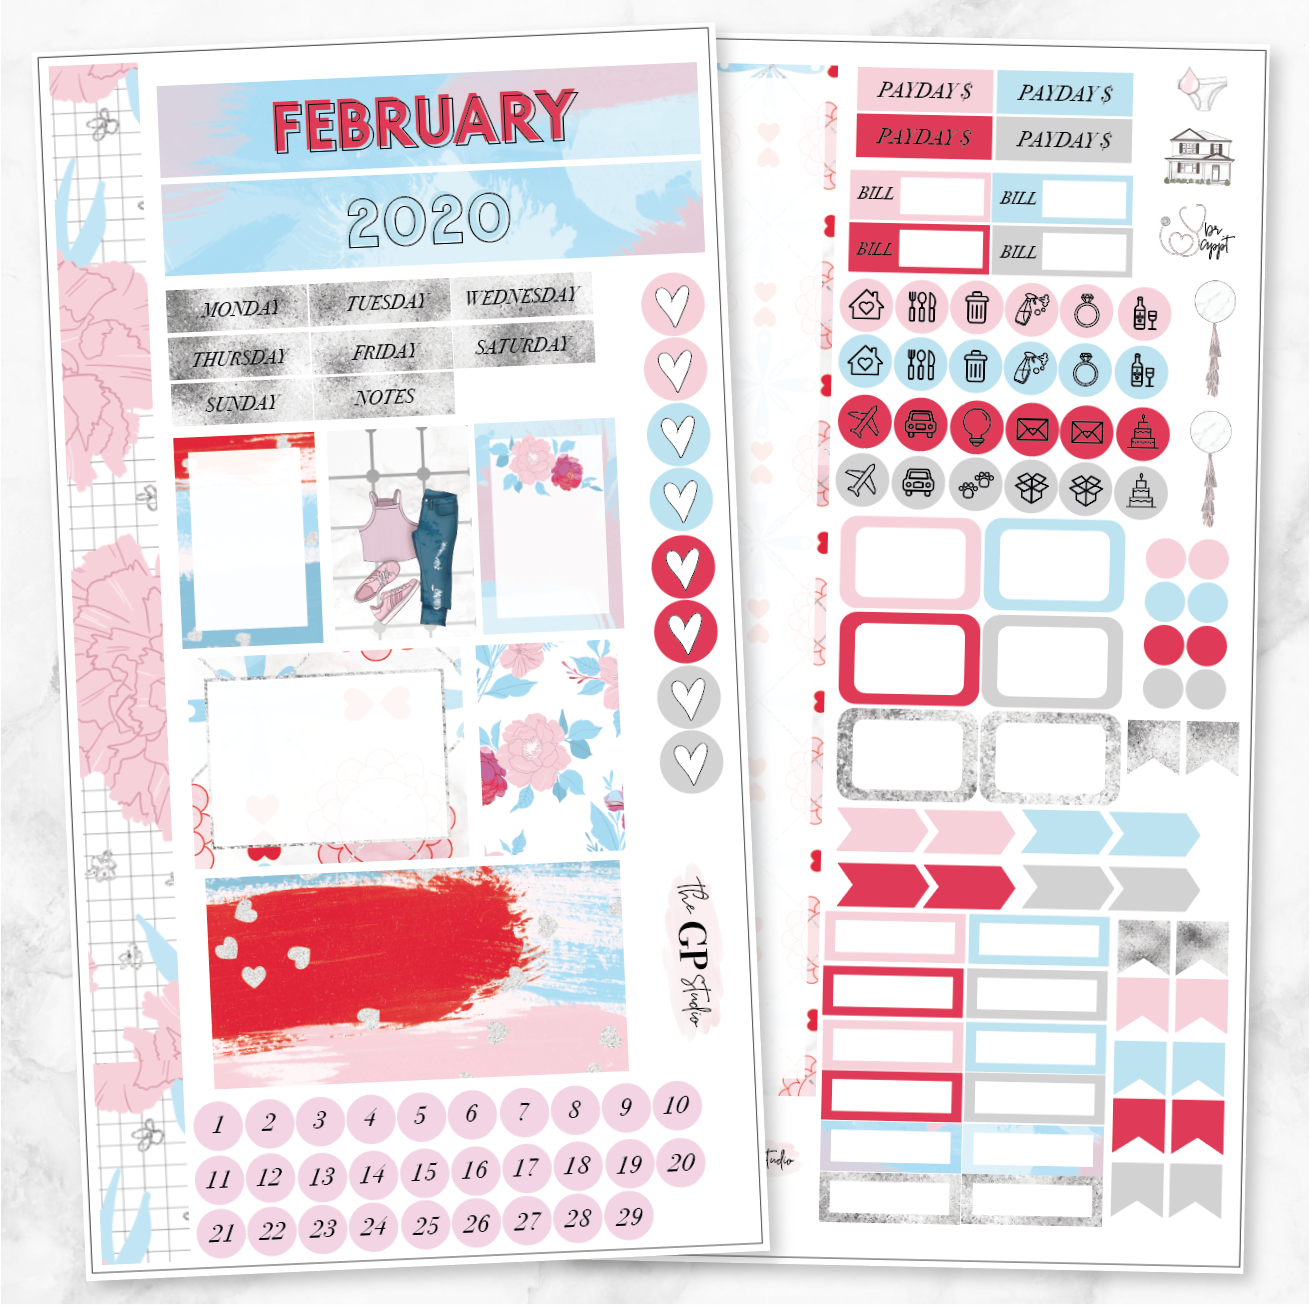 FEBRUARY 2020 MONTHLY VIEW Personal/TN Size Stickers-The GP Studio